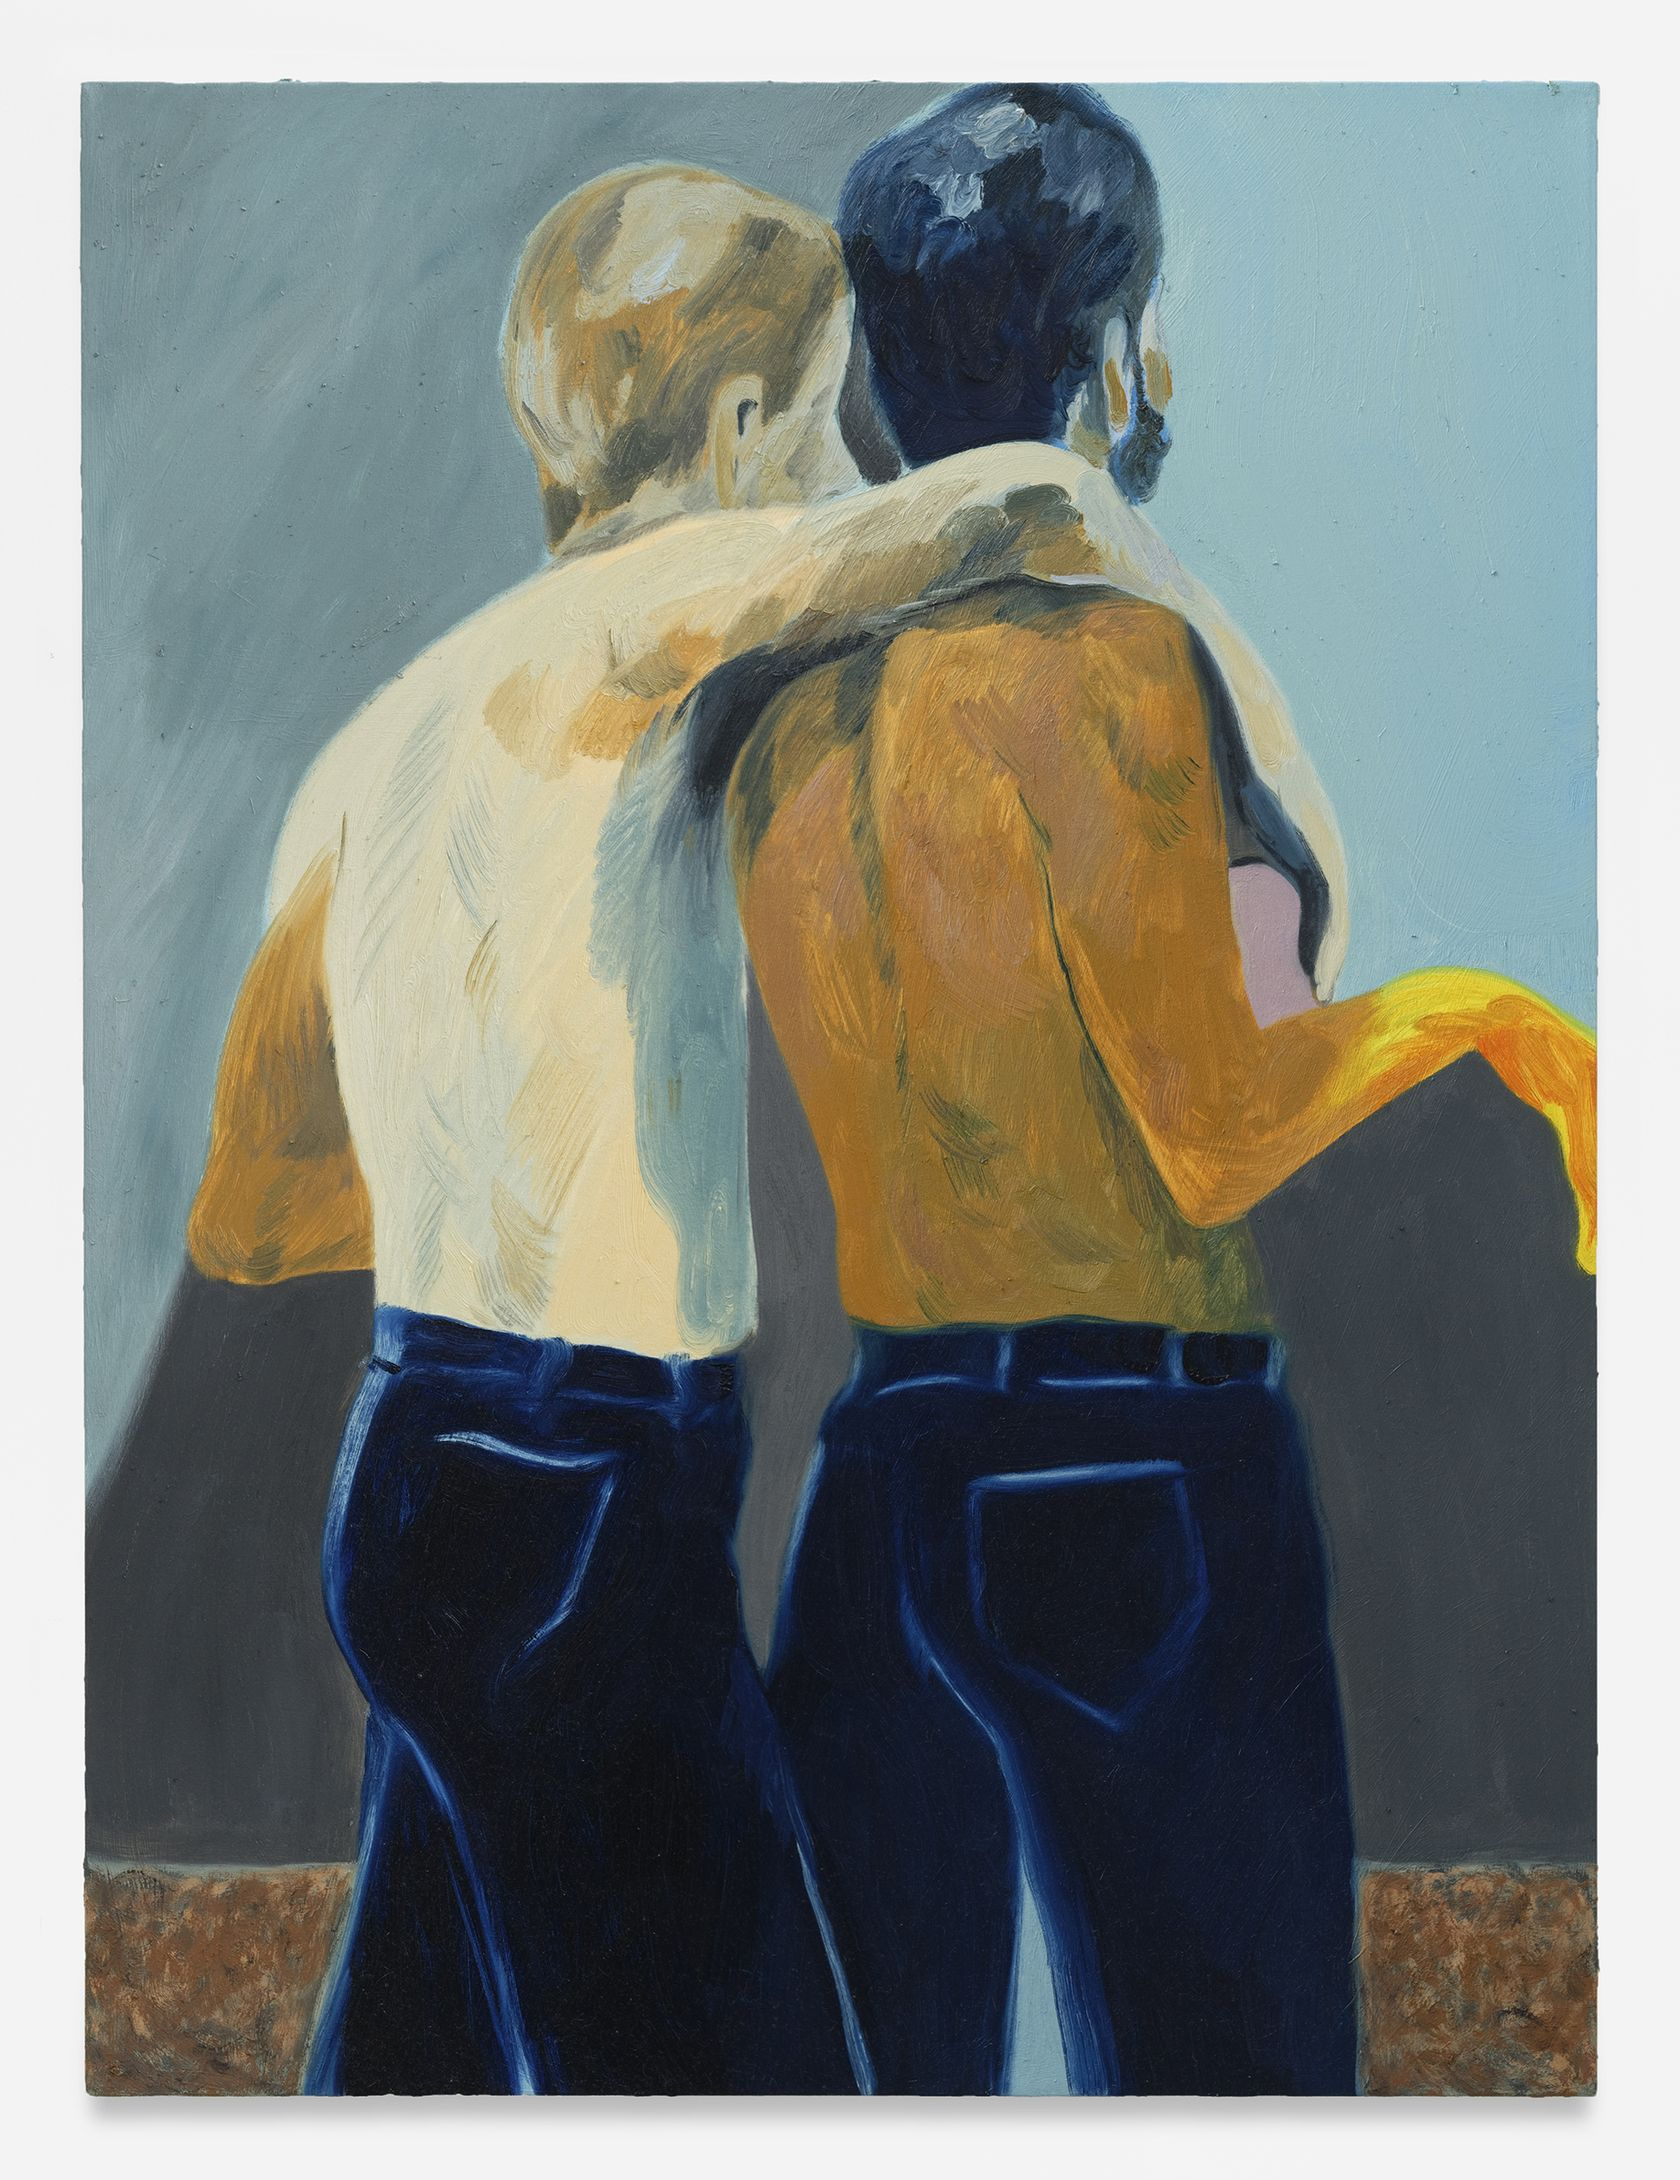 Anthony Cudahy, Twinned, 2021 Huile sur toile122 × 91 cm / 48 × 36 in.